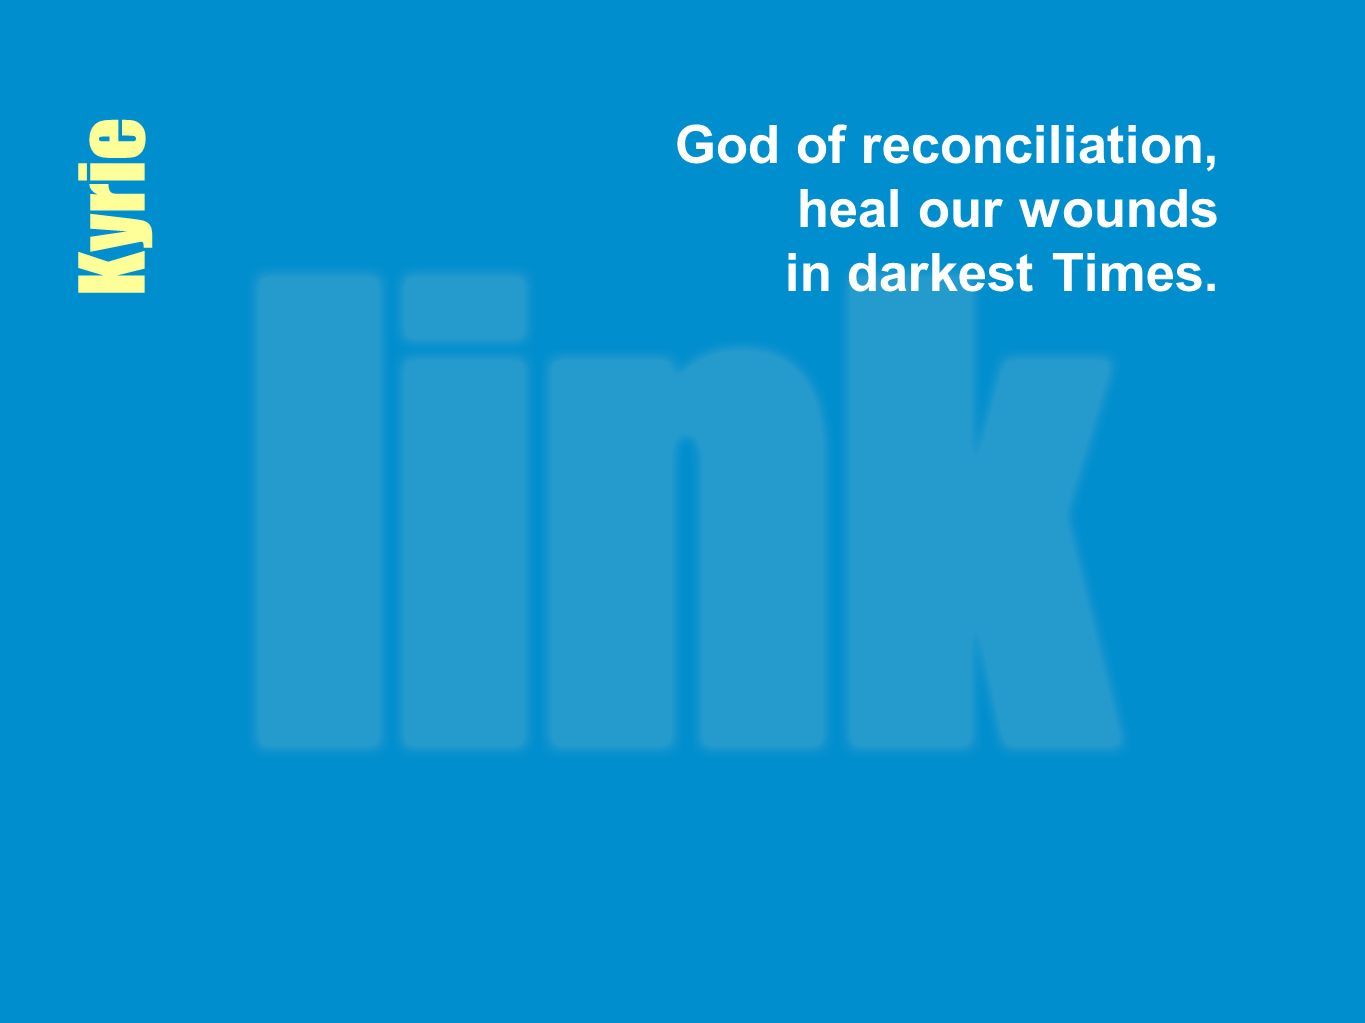 God of reconciliation, heal our wounds in darkest Times.